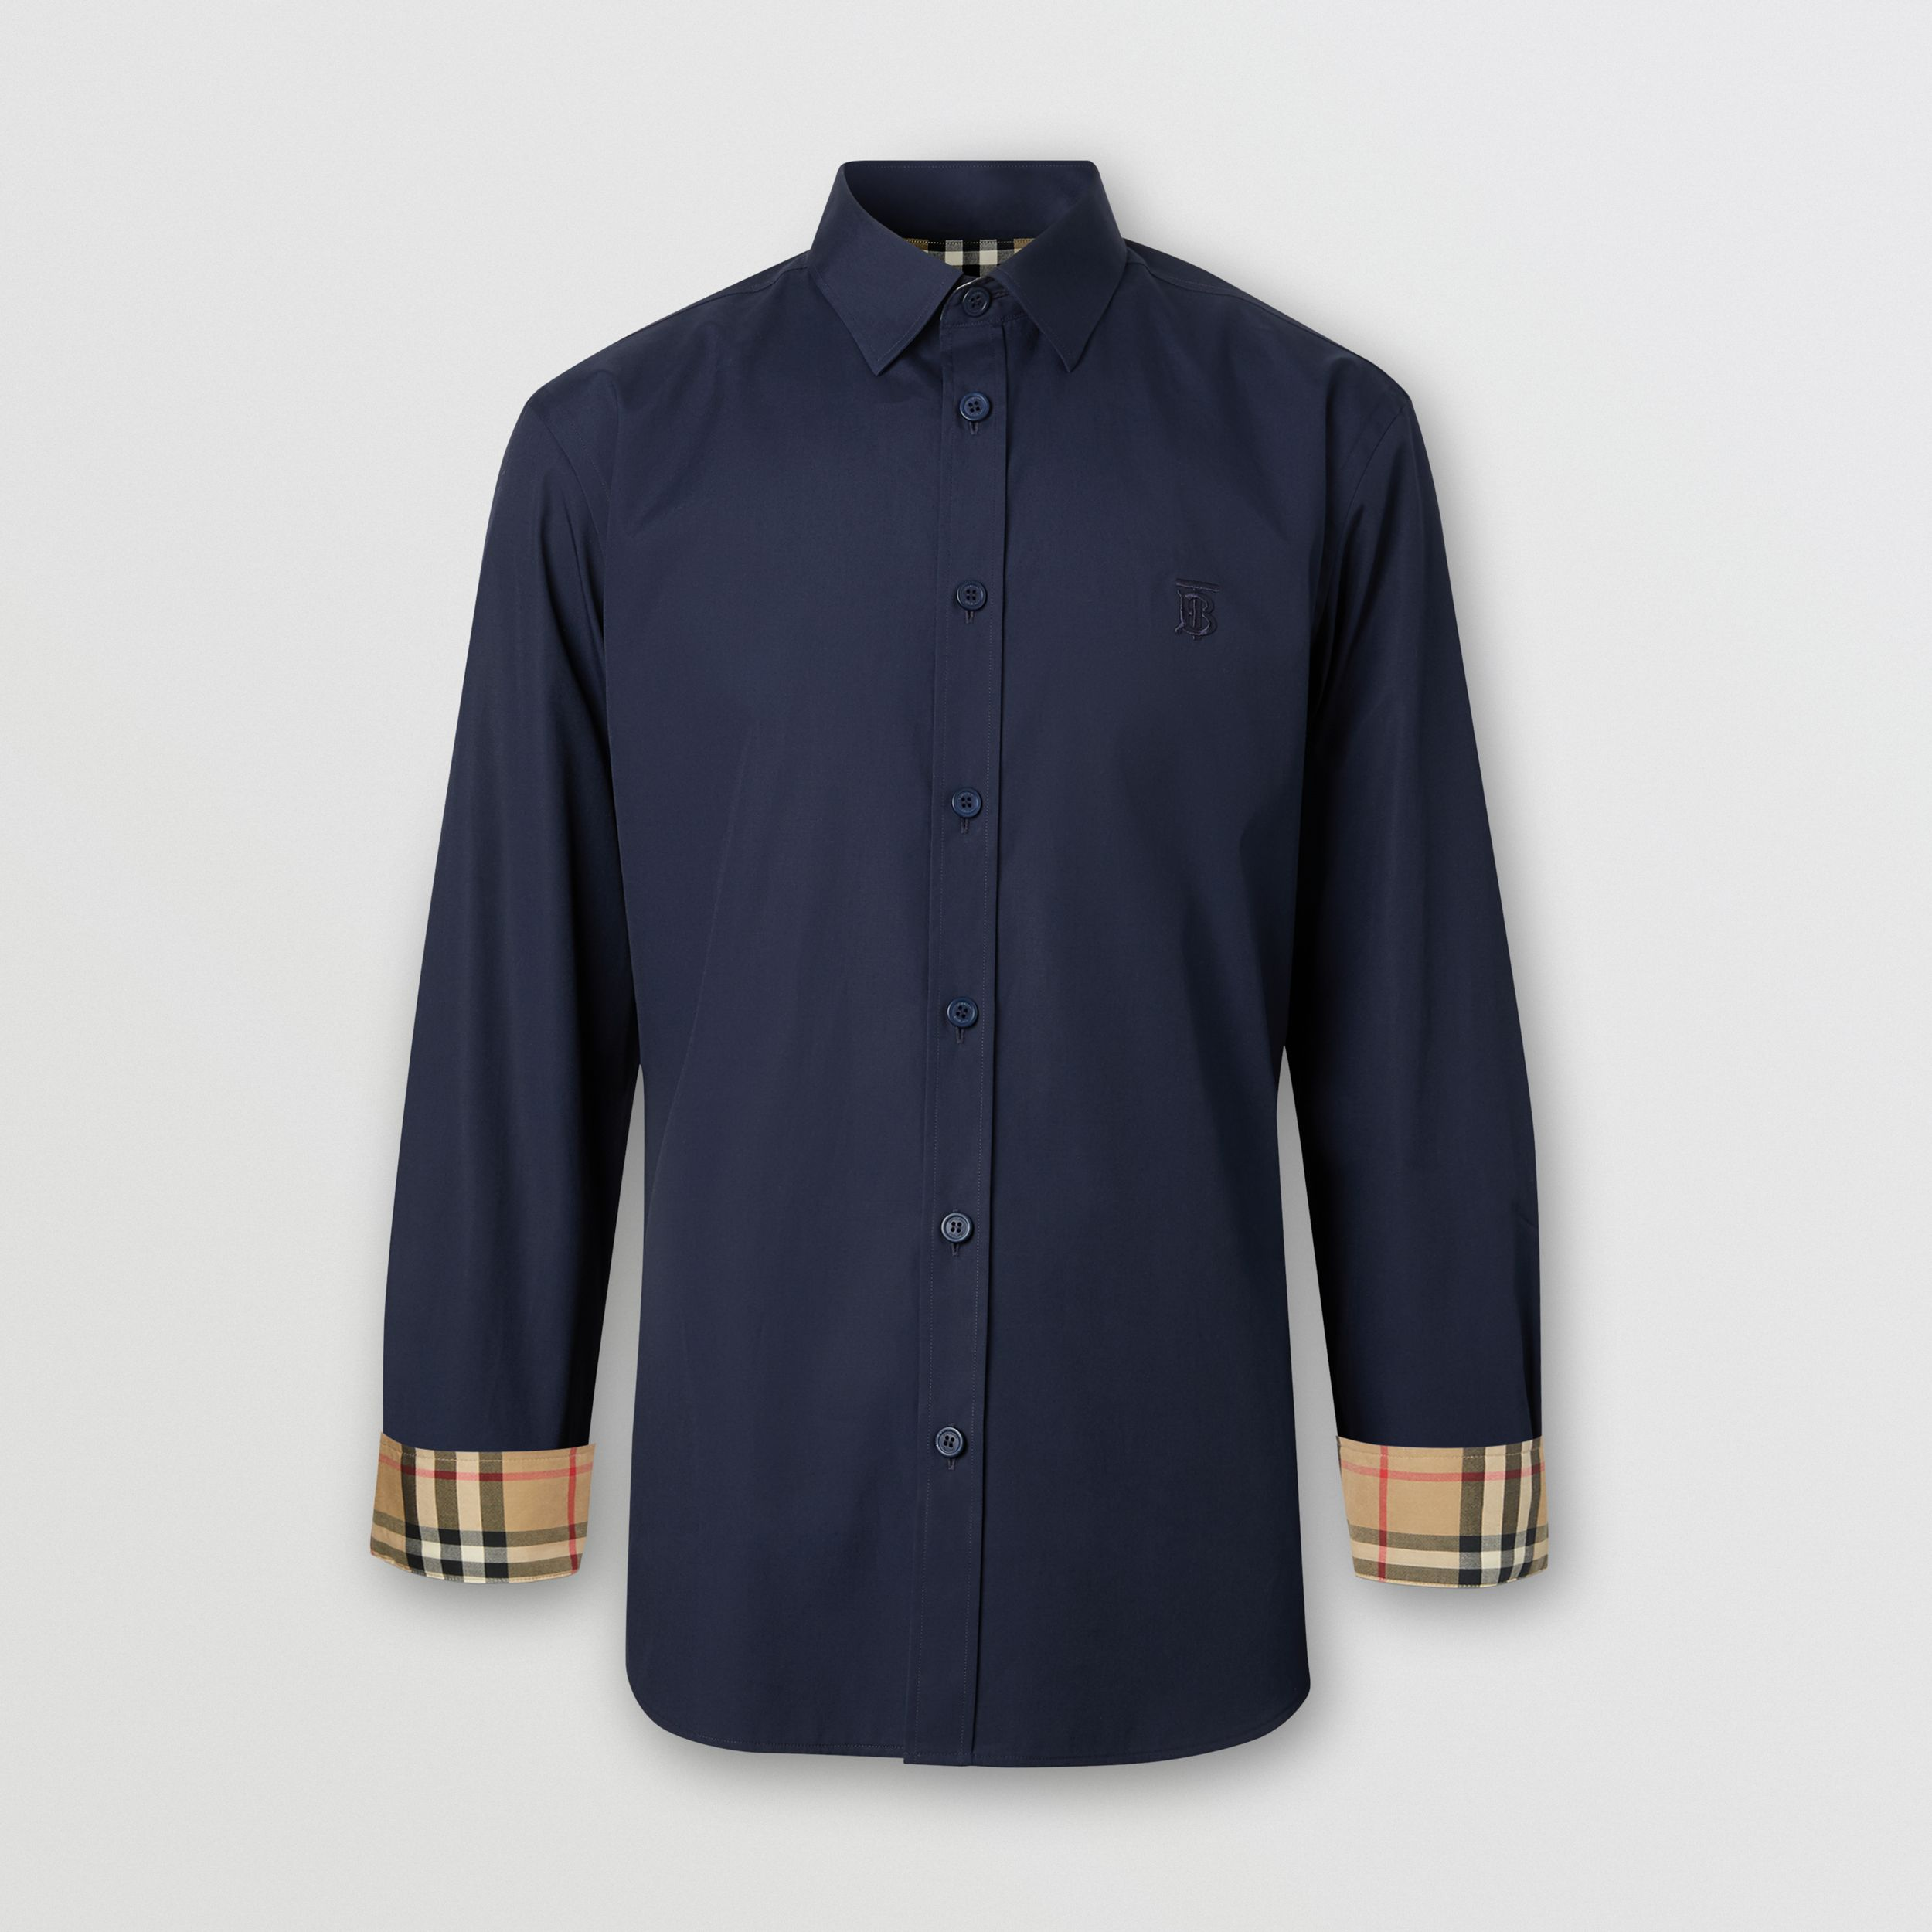 Slim Fit Monogram Motif Stretch Cotton Poplin Shirt in Navy - Men | Burberry - 4